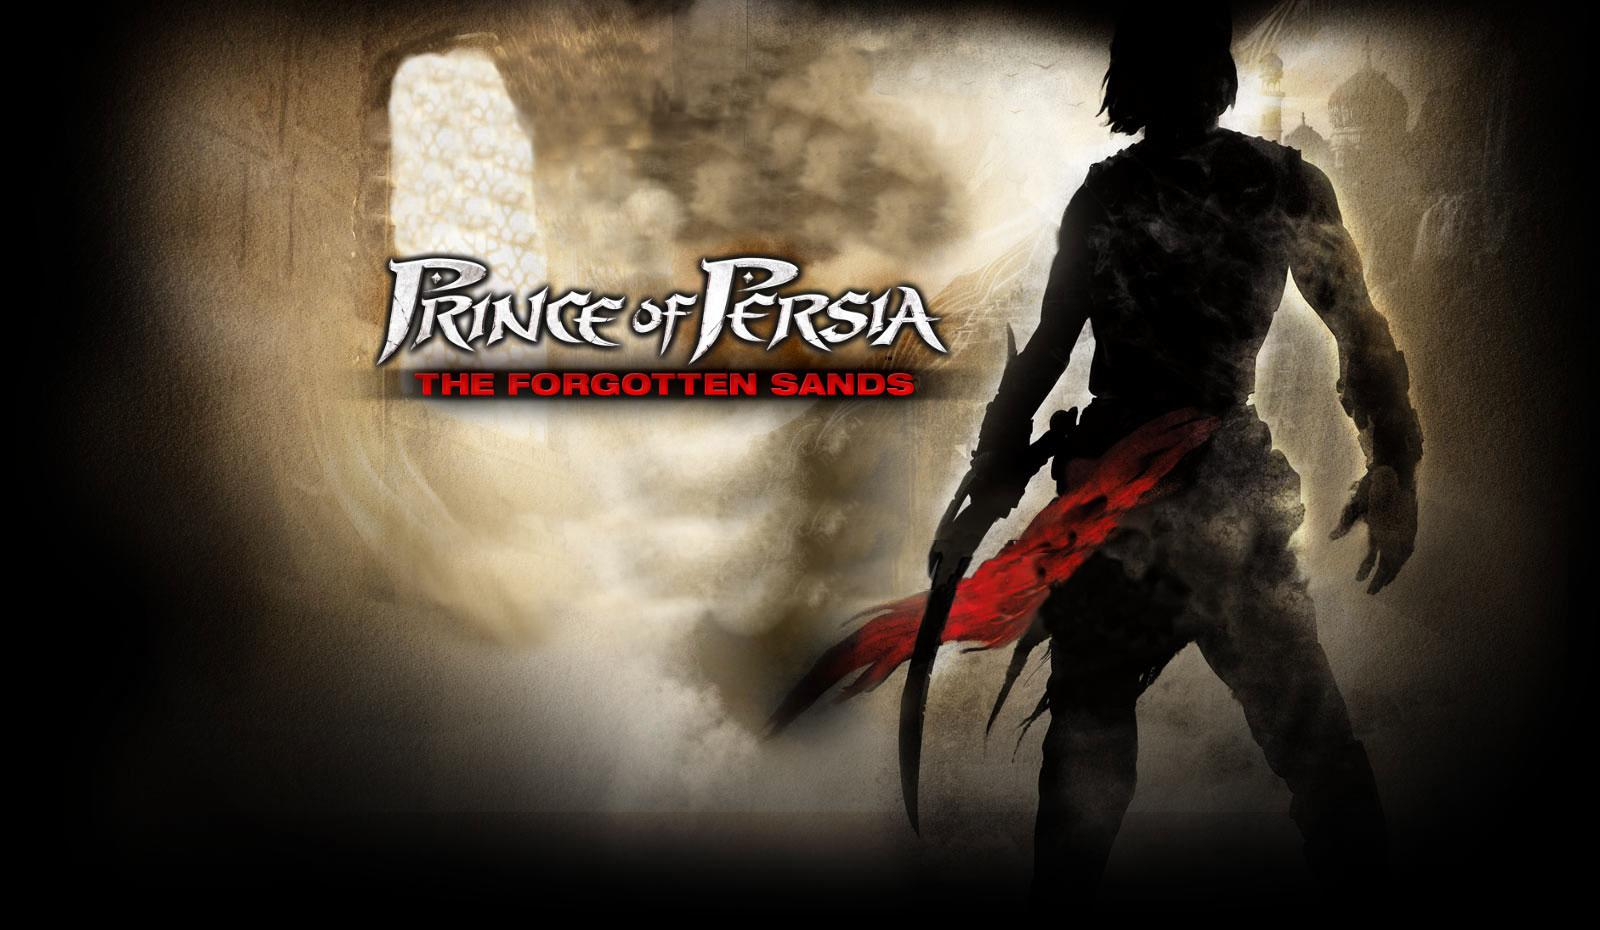 Prince Of Persia The Forgotten Sands PC Version Full Free Download